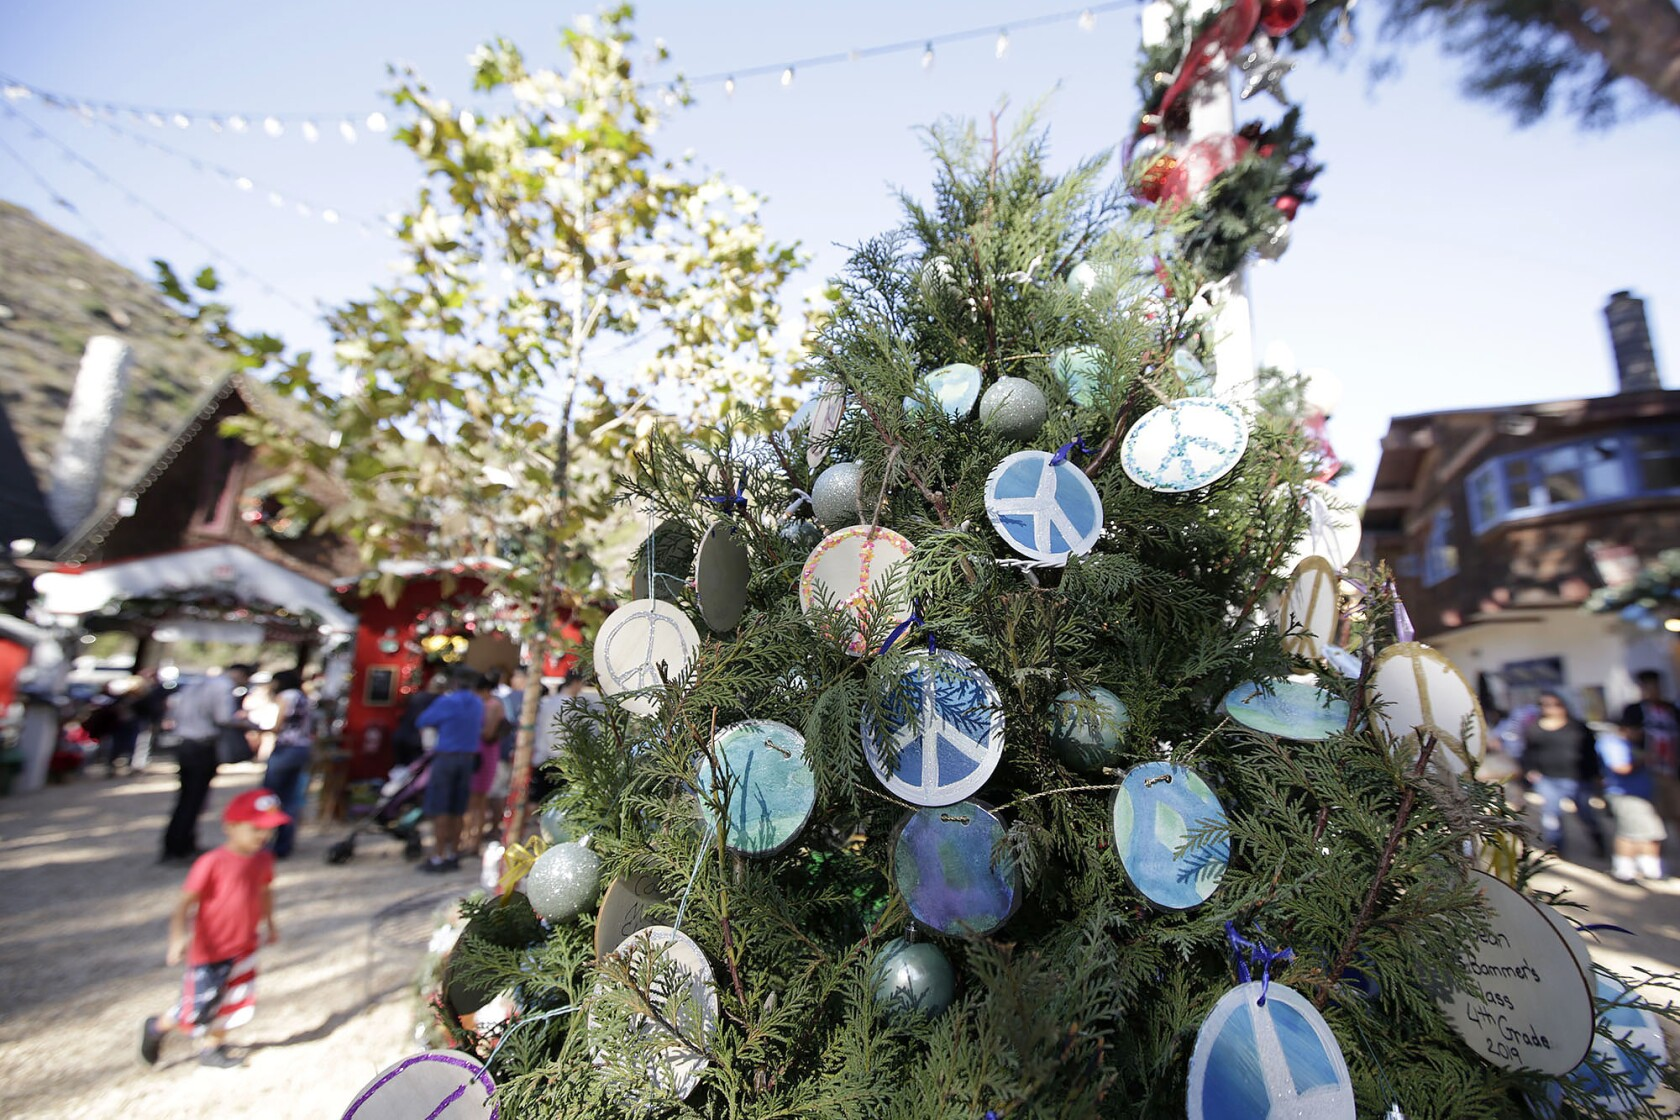 It's a winter wonderland at the Sawdust Festival grounds in Laguna Beach